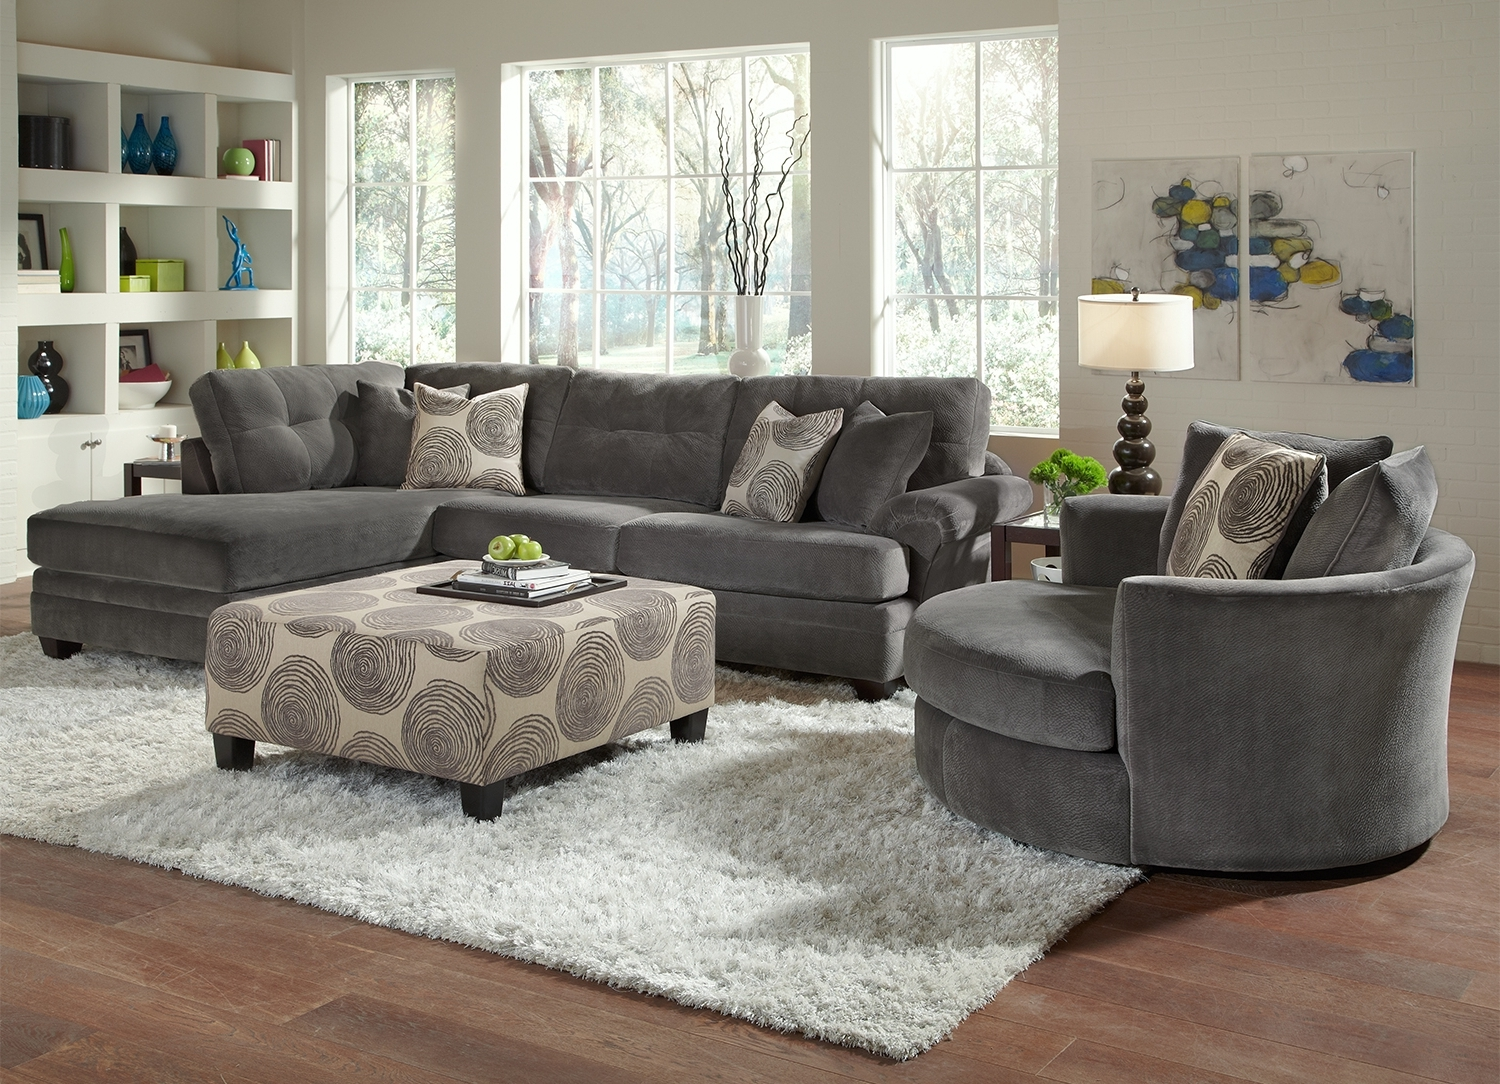 Tips to buy swivel chairs for living room for Buying living room furniture